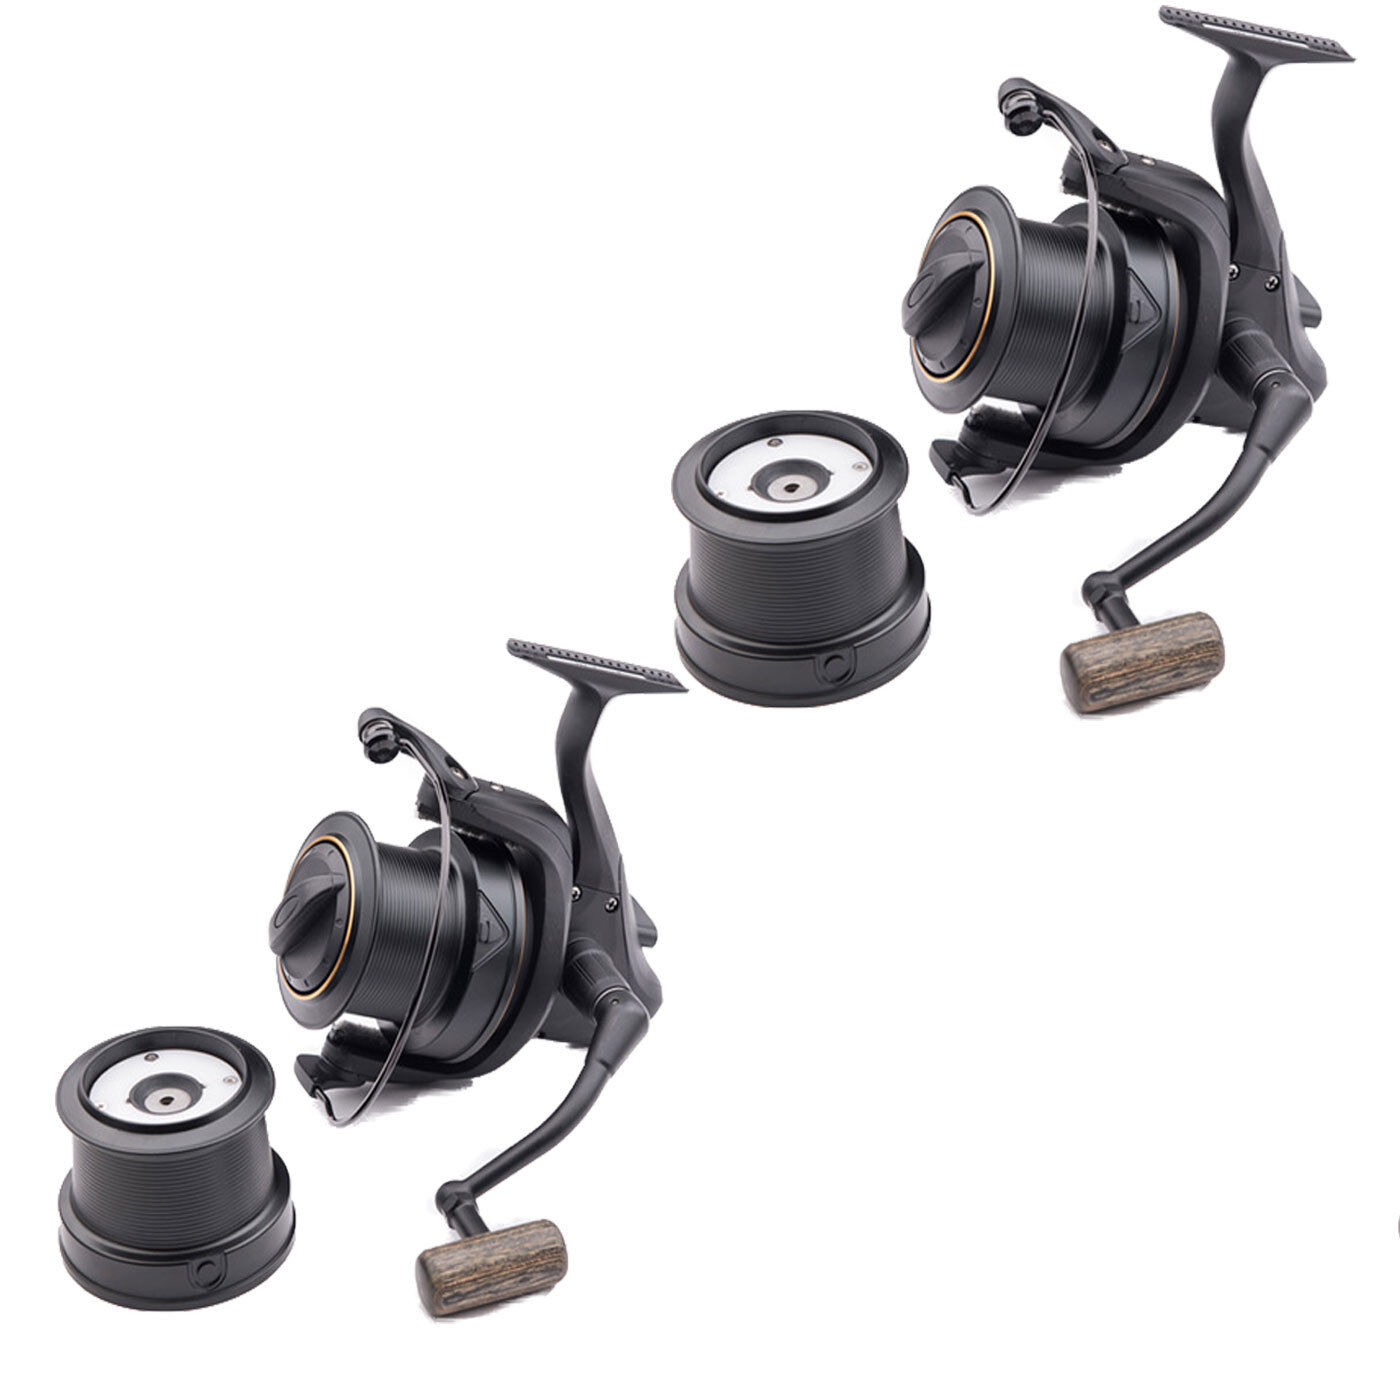 Wychwood Riot Big Pit 65S Carp of Reel -Set of Carp 2- Brand New - Free Delivery 7732ad